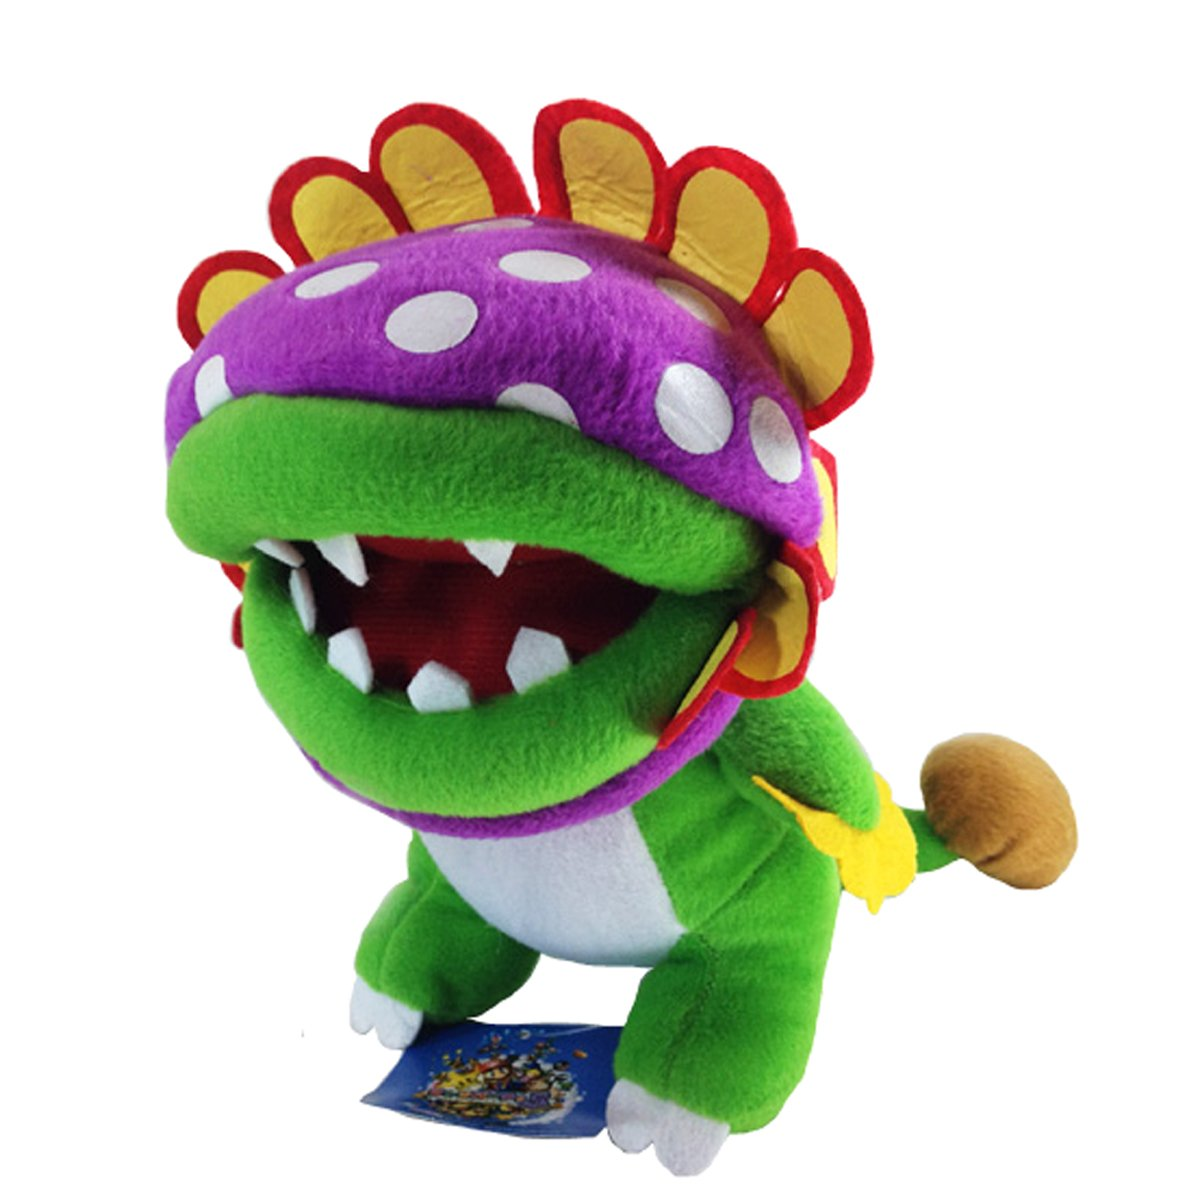 Amazon.com: Generic Dino Piranha Super Mario Bros Plush Soft Toy Stuffed Animal Boss Flower Figure Doll 8